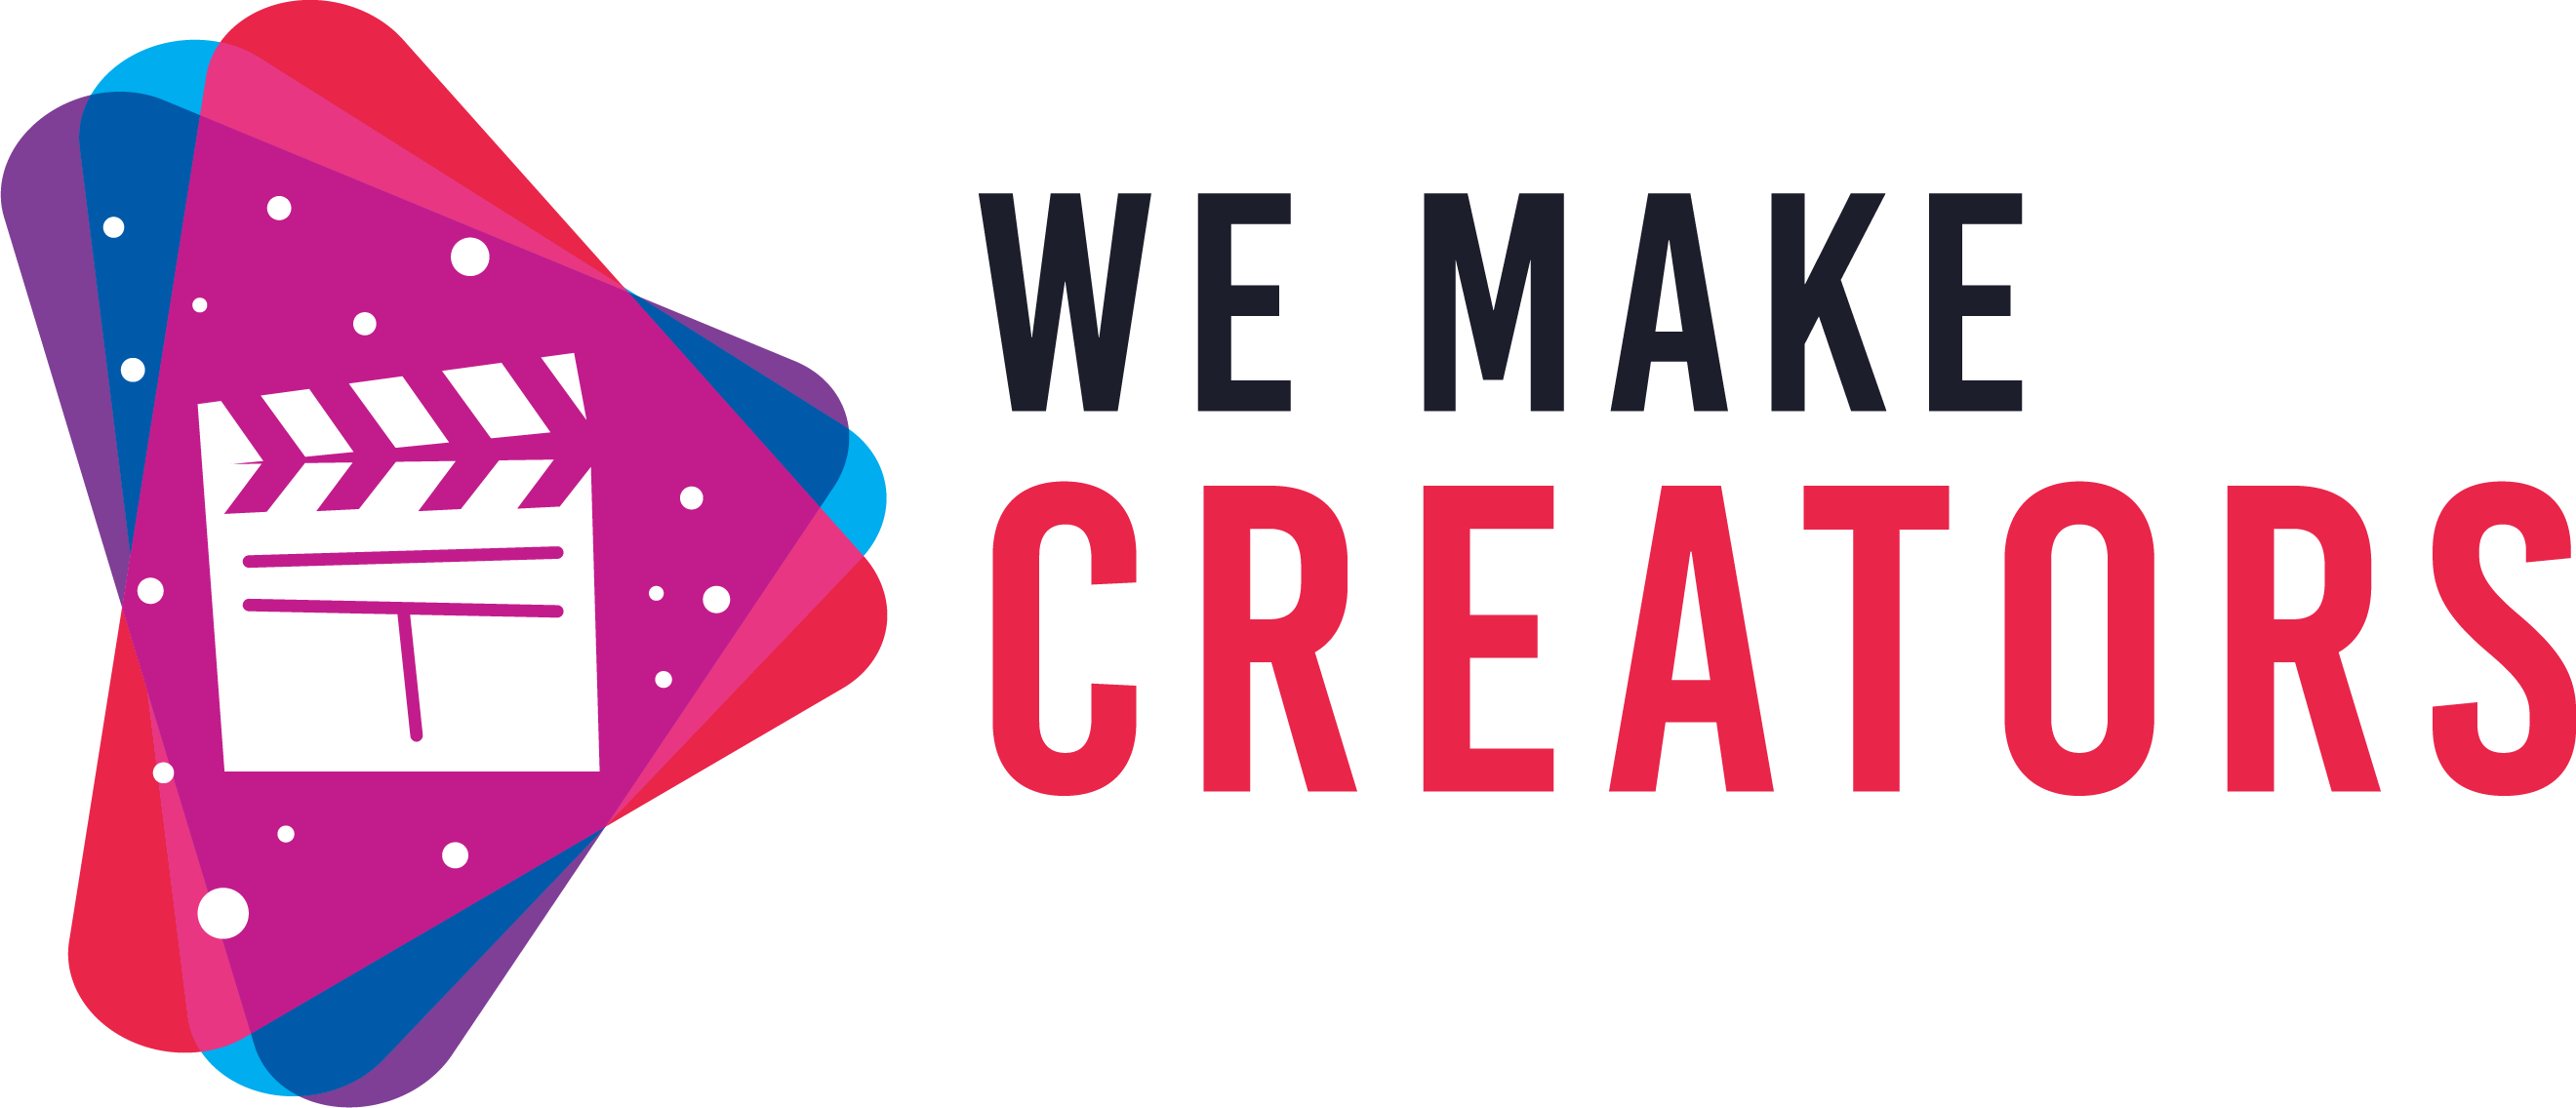 course/digital-marketing-course-batch-01-2021-by-we-make-creators